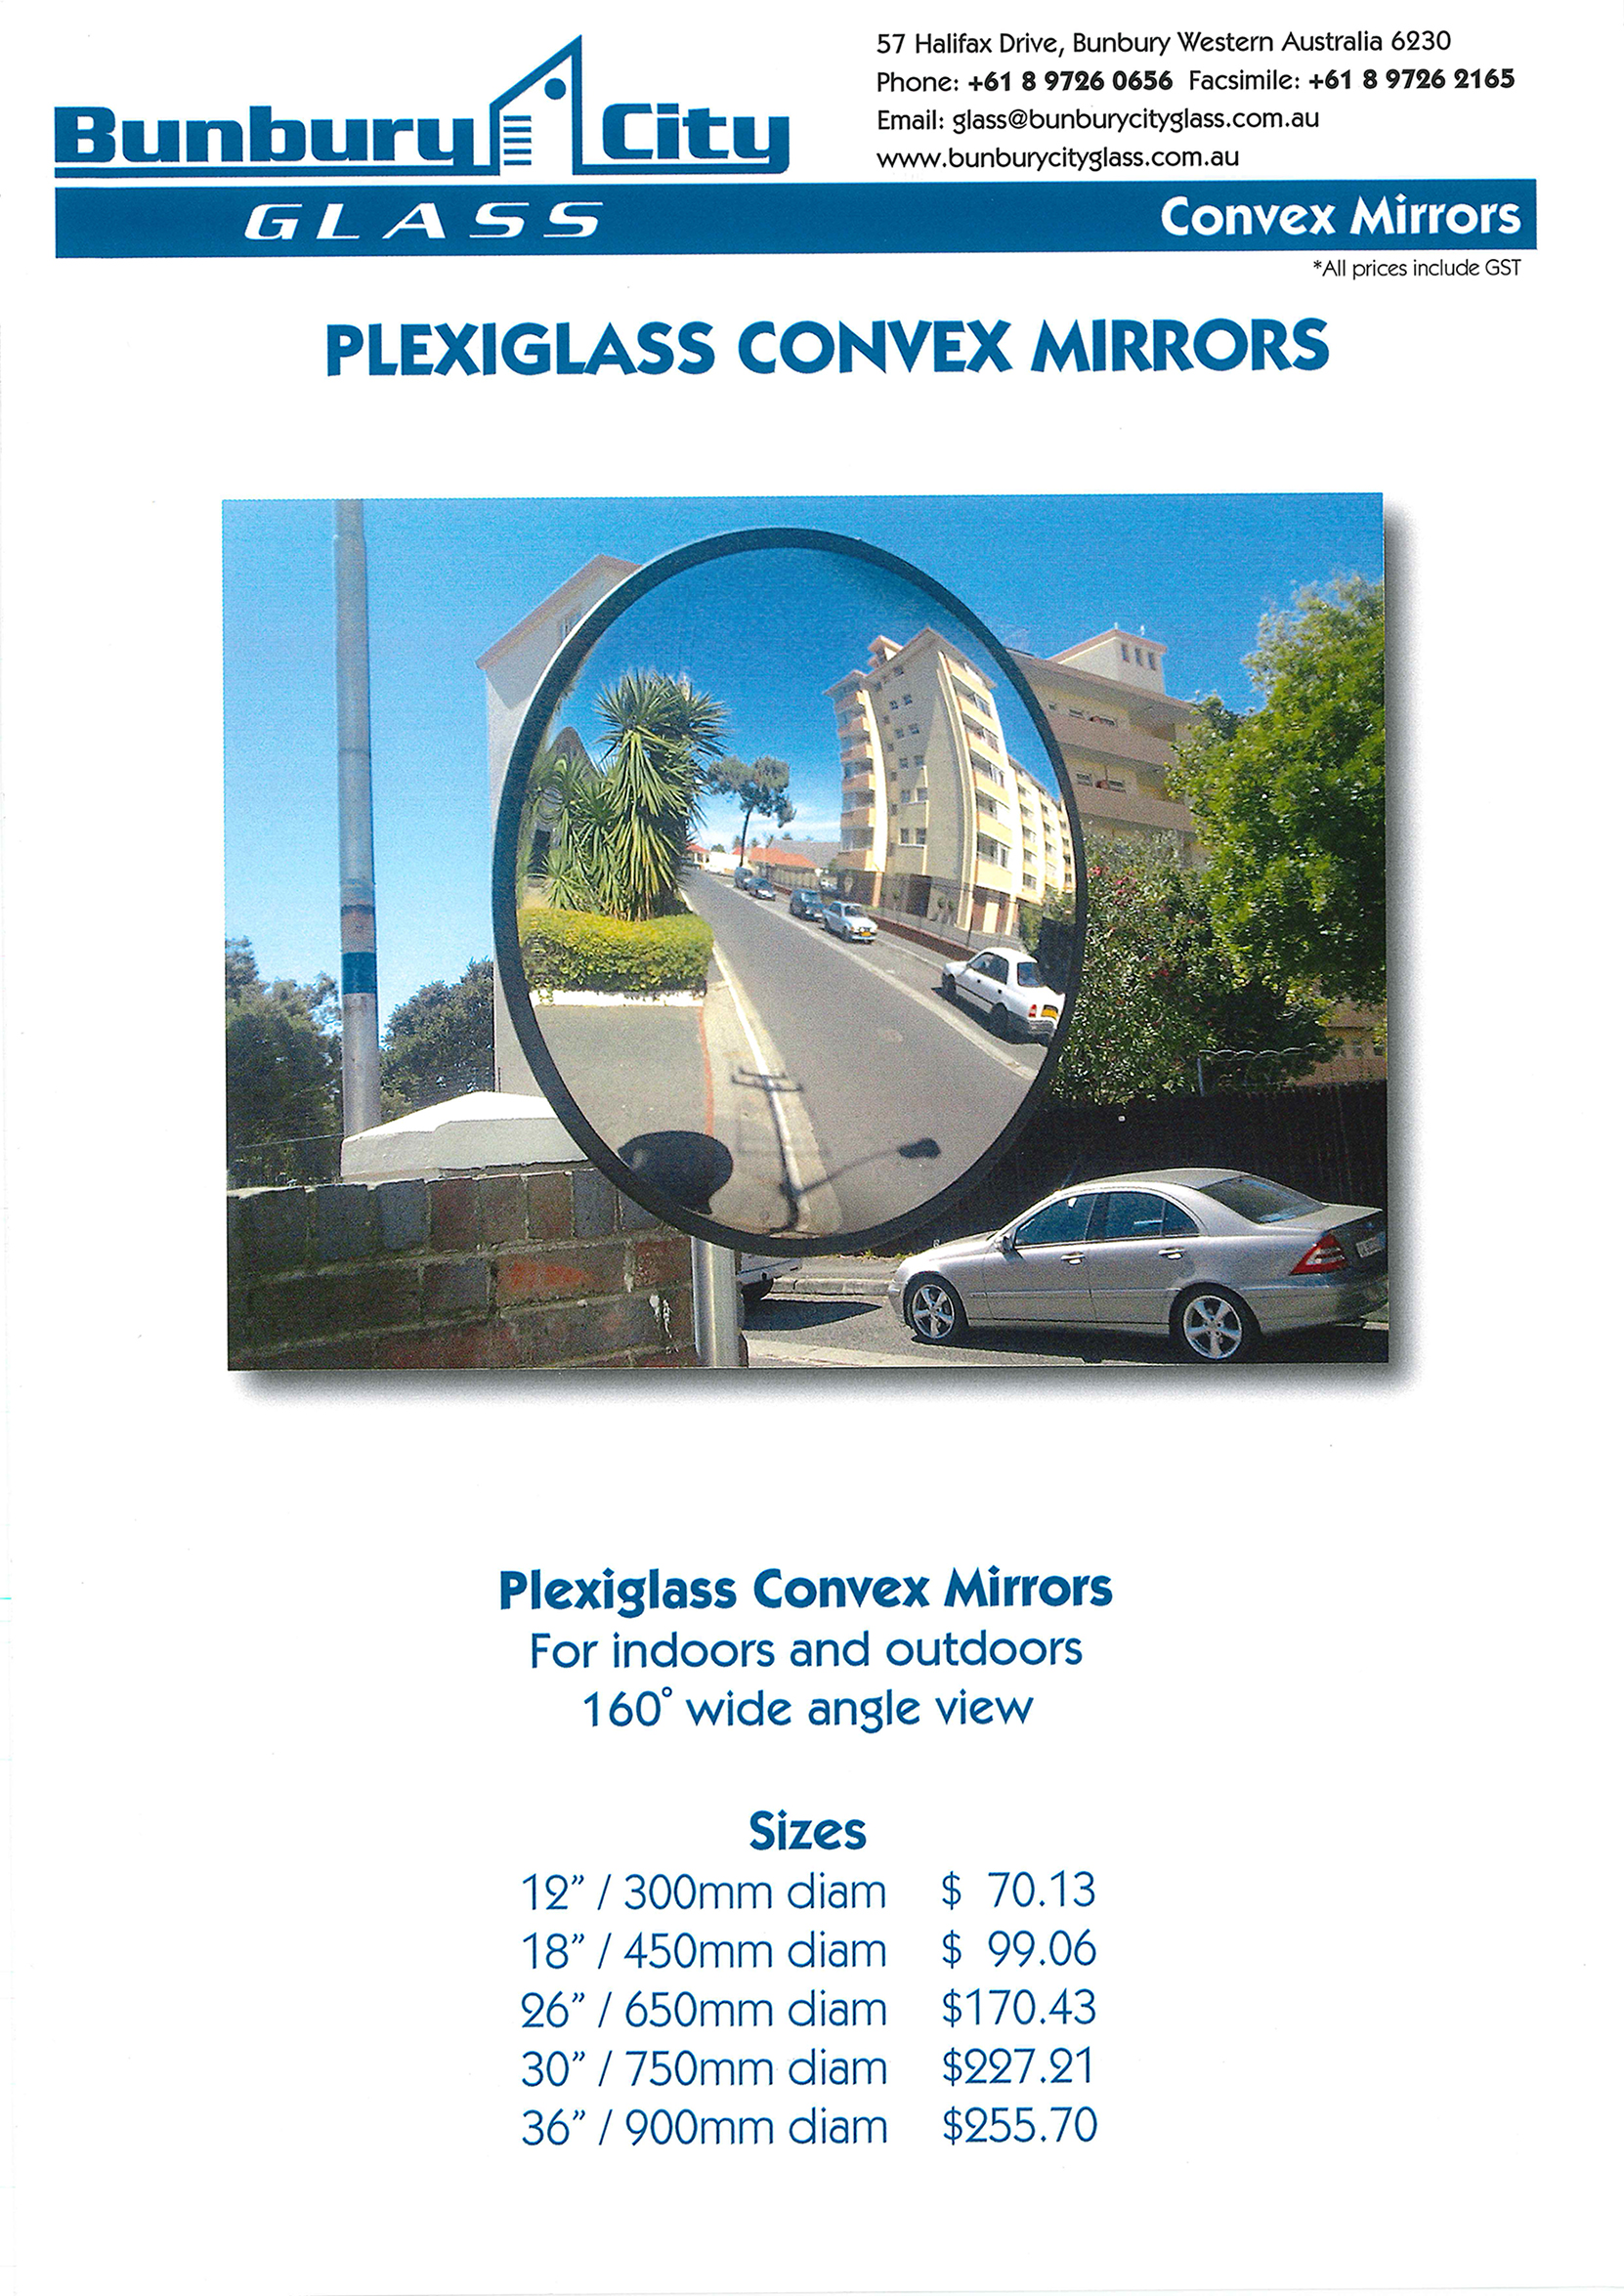 Bunbury City Glass | Convex Mirrors